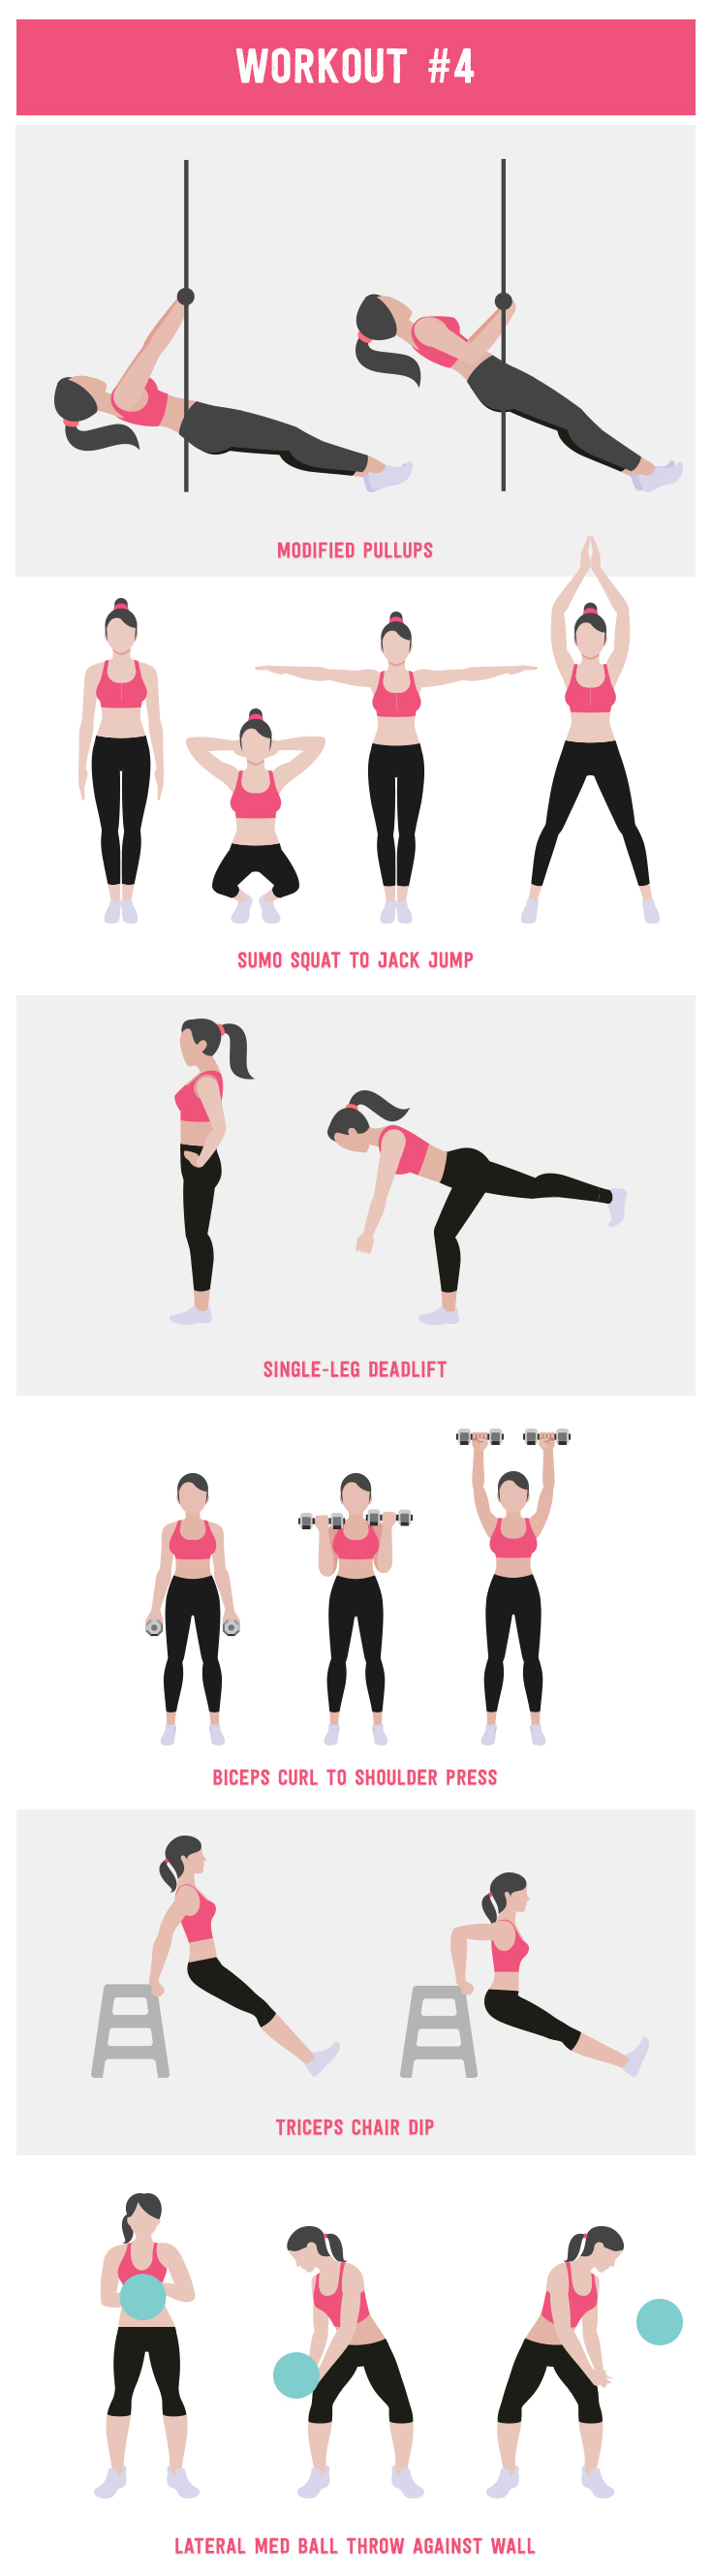 One of five incredible 30-minute workouts